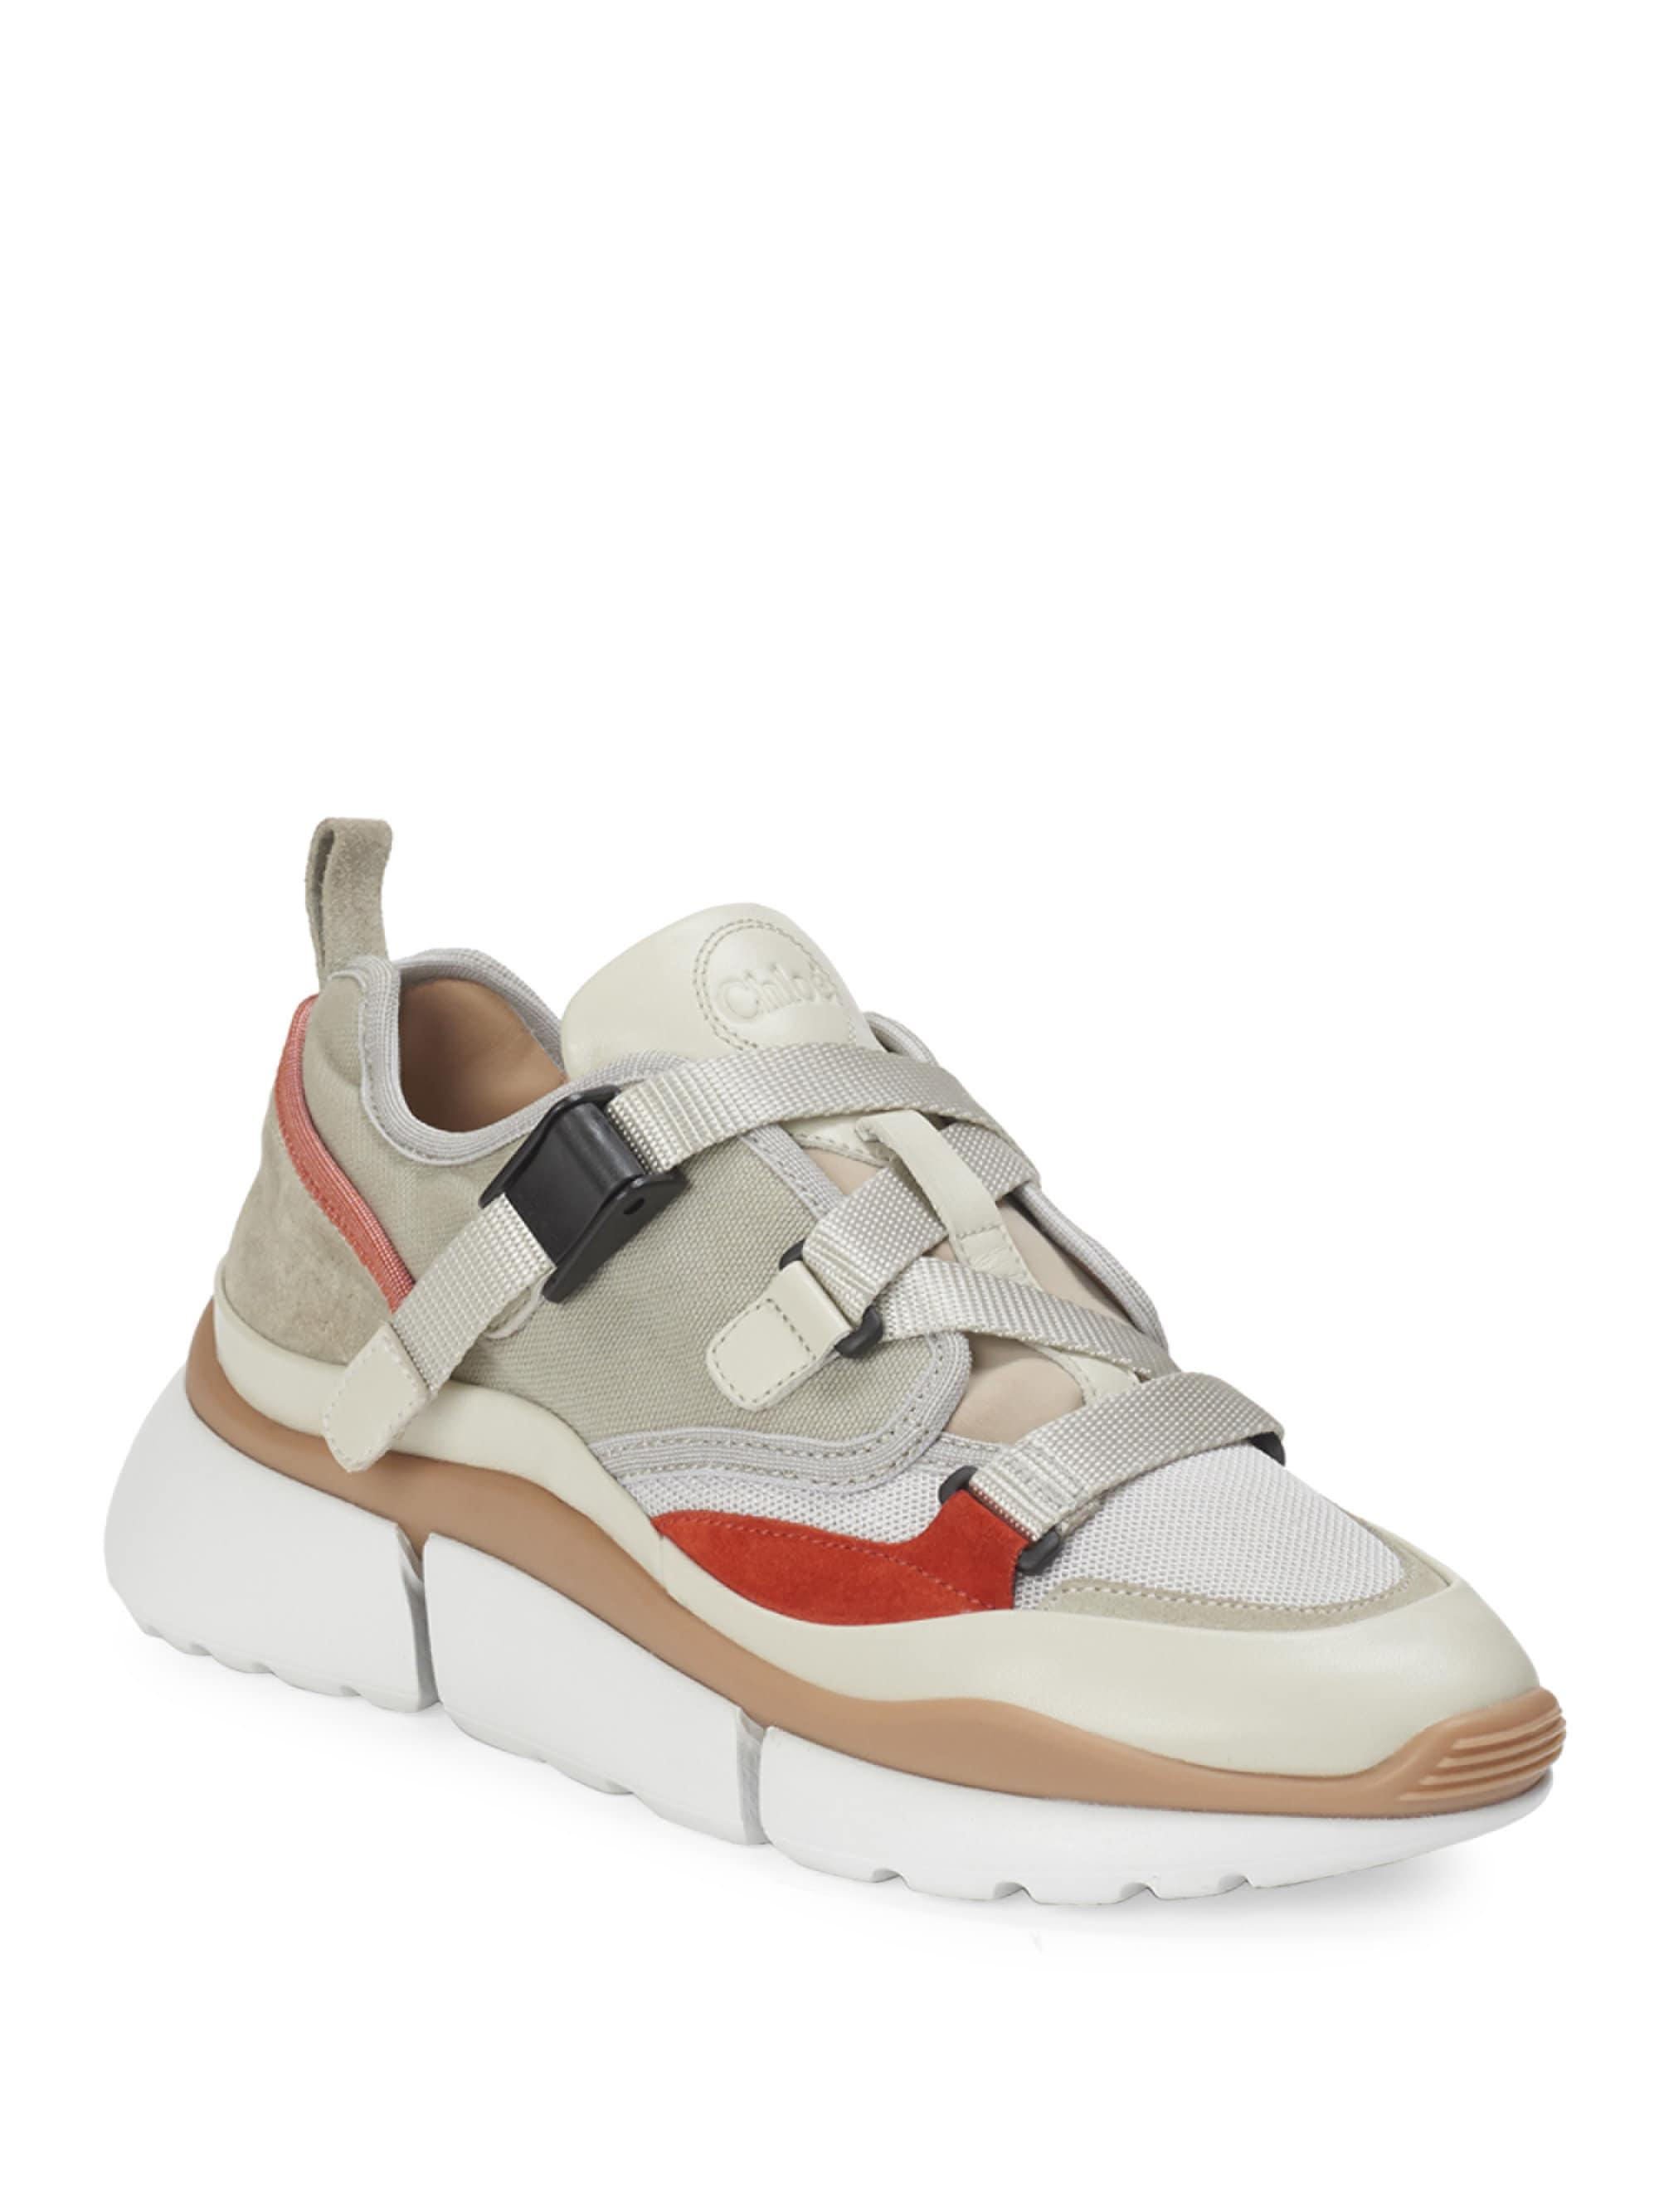 Brand New Unisex For Sale Looking For Cheap Online Sneakers SONNIE calfskin cotton nylon polyester smooth leather Logo beige Chlo Buy Cheap Comfortable oNG3D